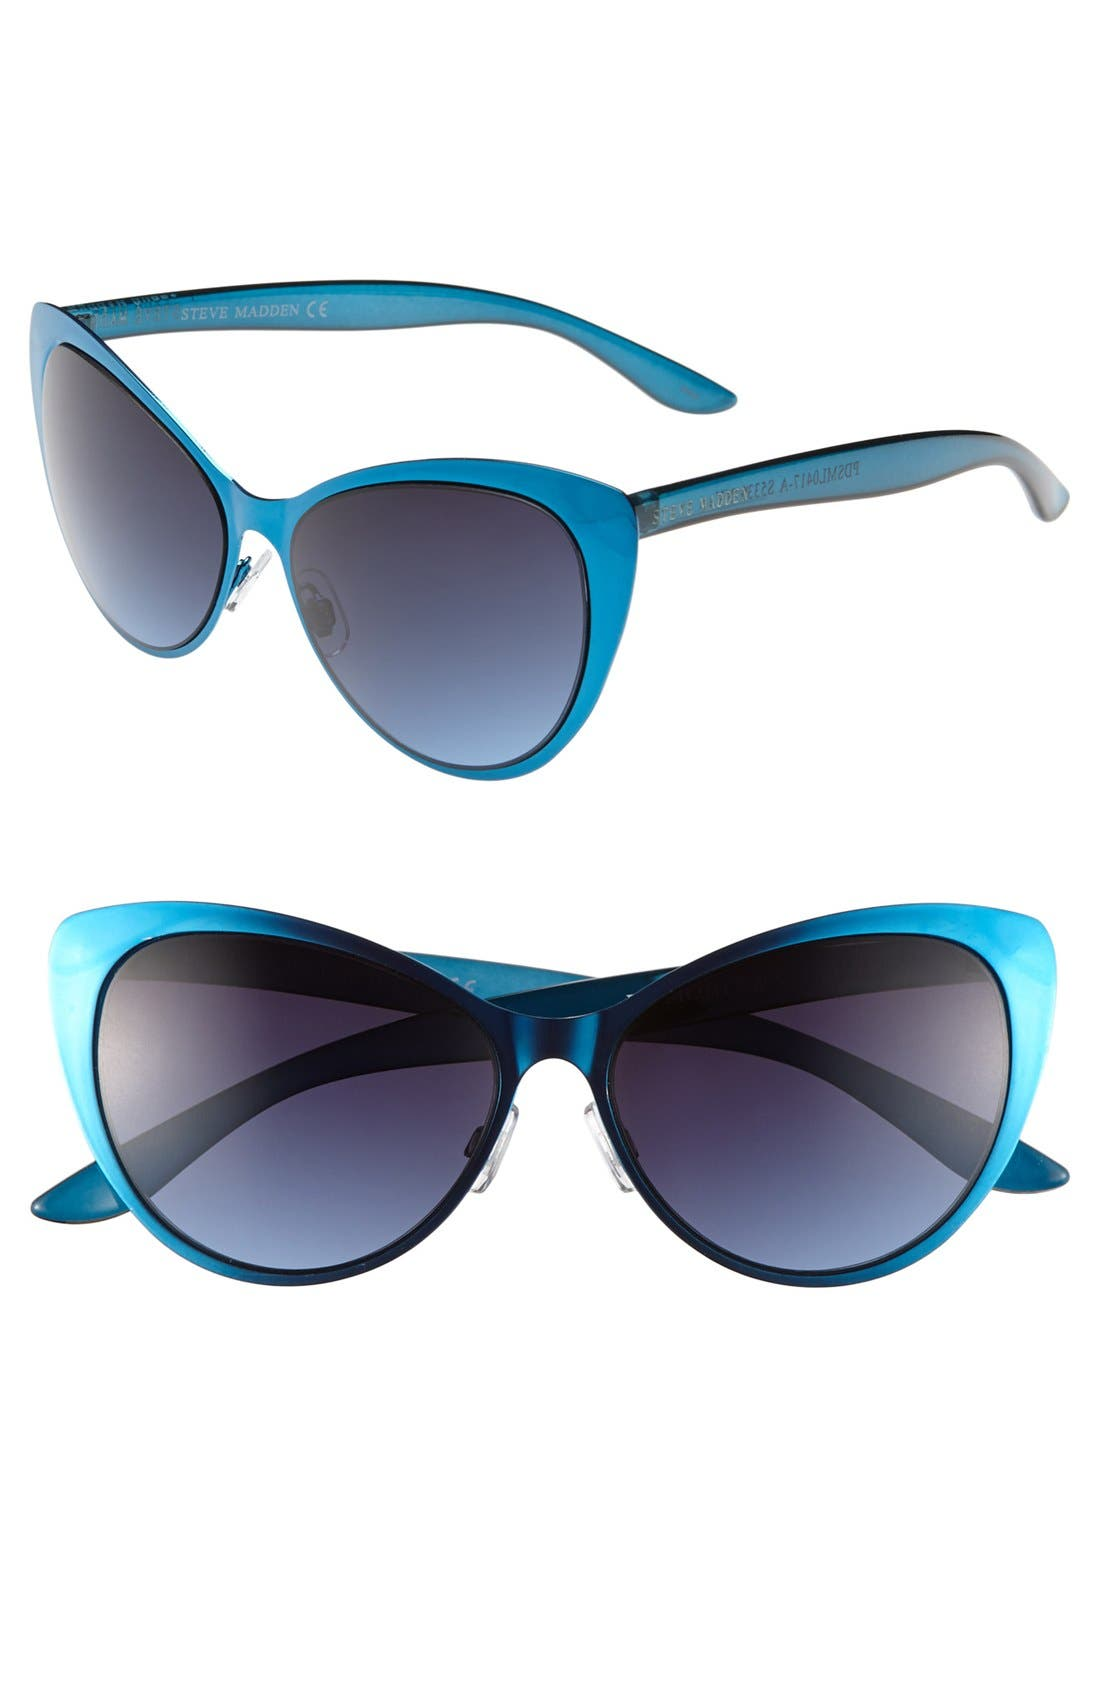 Main Image - Steve Madden 'Extreme' 65mm Cat Eye Sunglasses